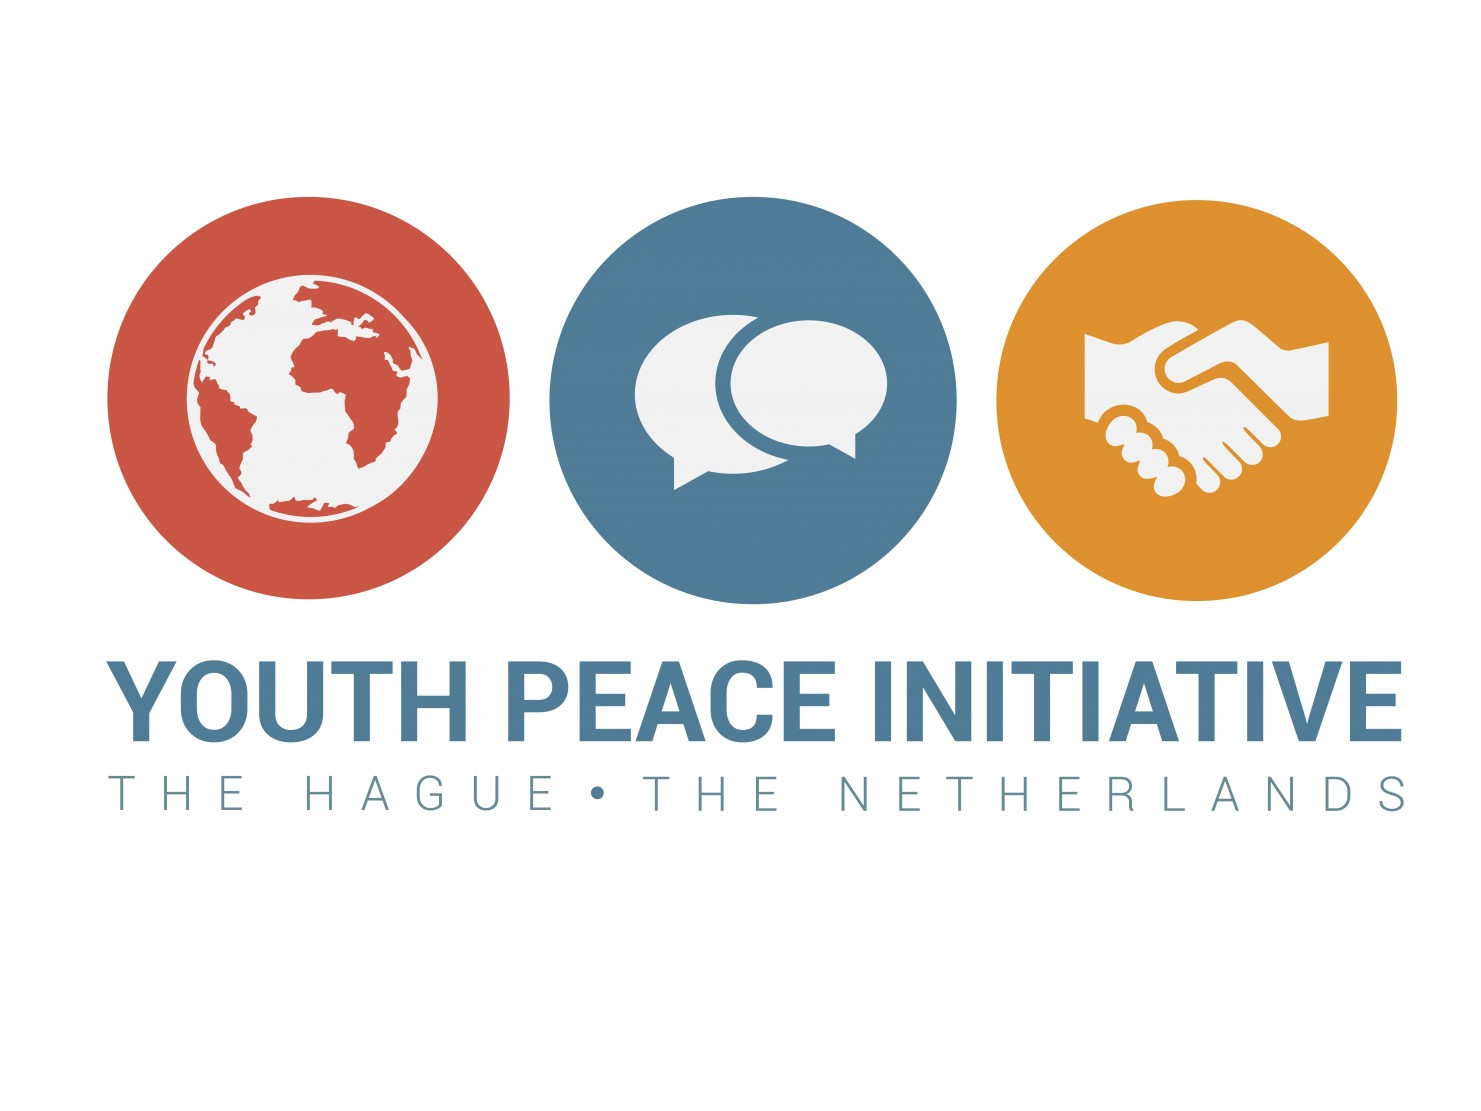 SECOND YPI CONFERENCE ON THE ISRAELI PALESTINIAN PEACE ISSUE